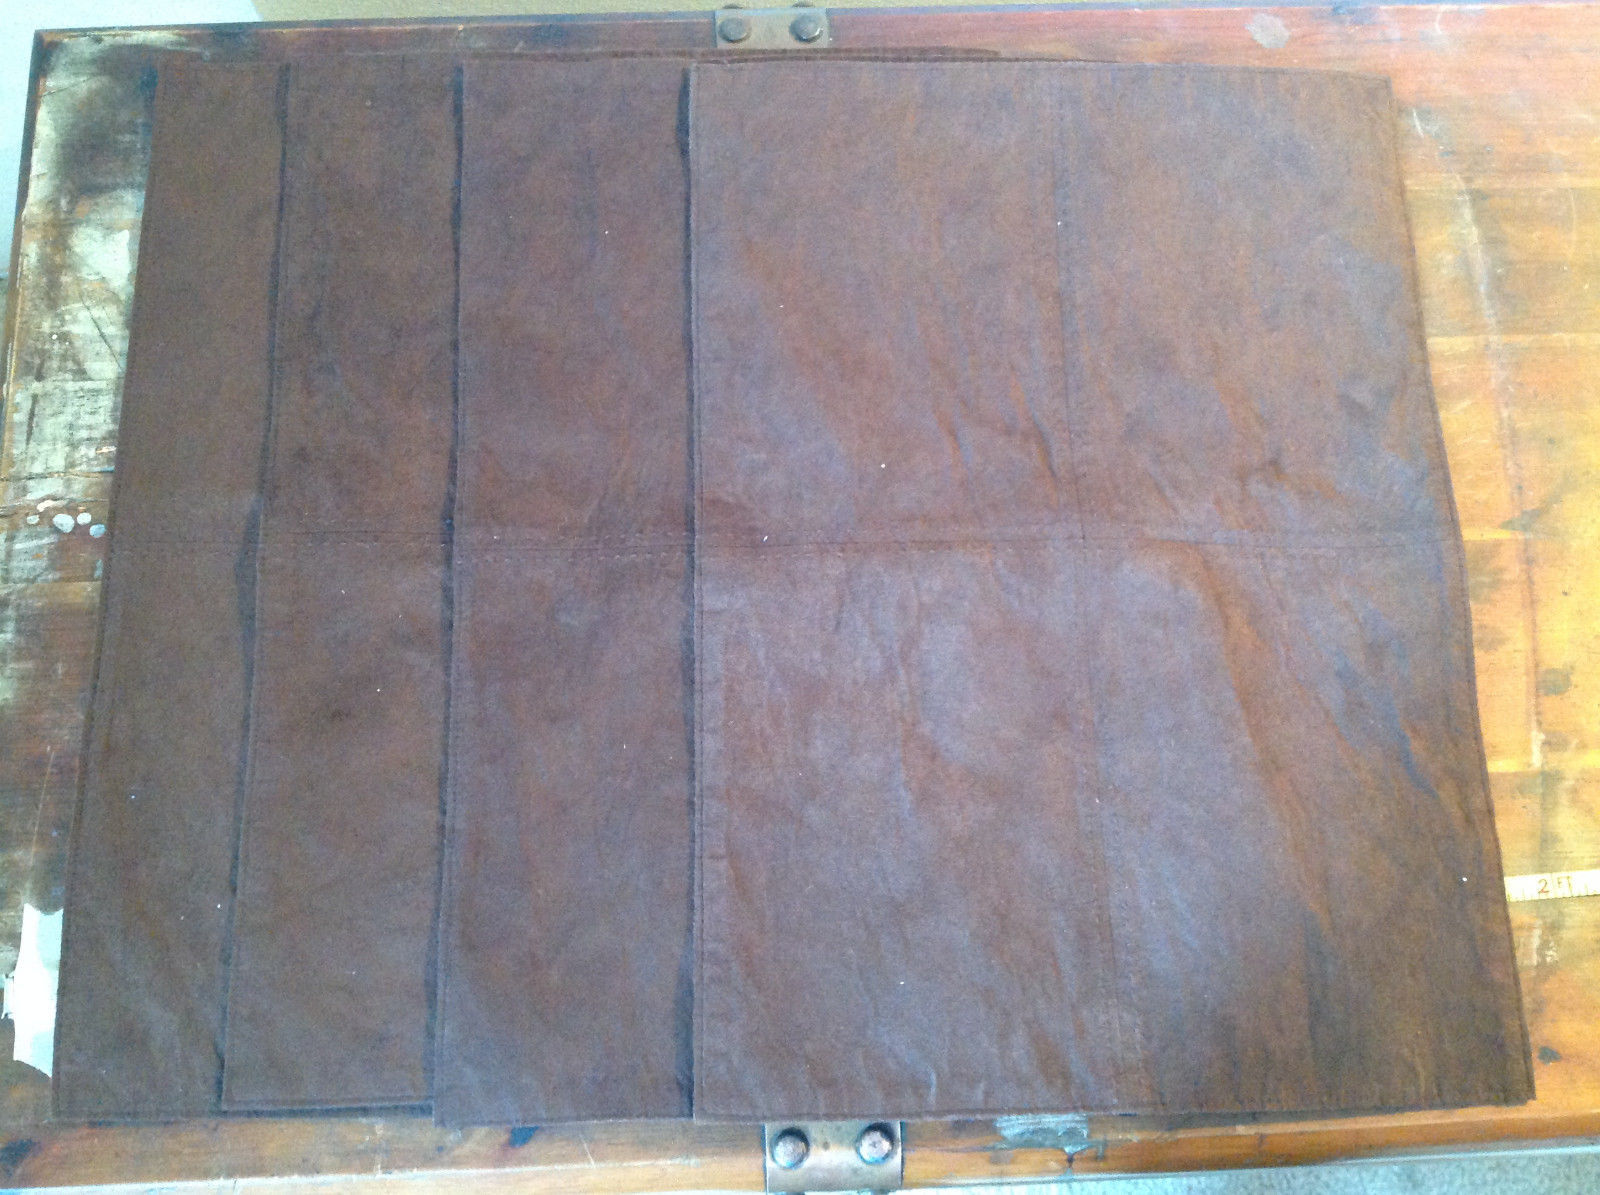 Four Brown Suede Like Material Dinner Placemats Very Sturdy Material